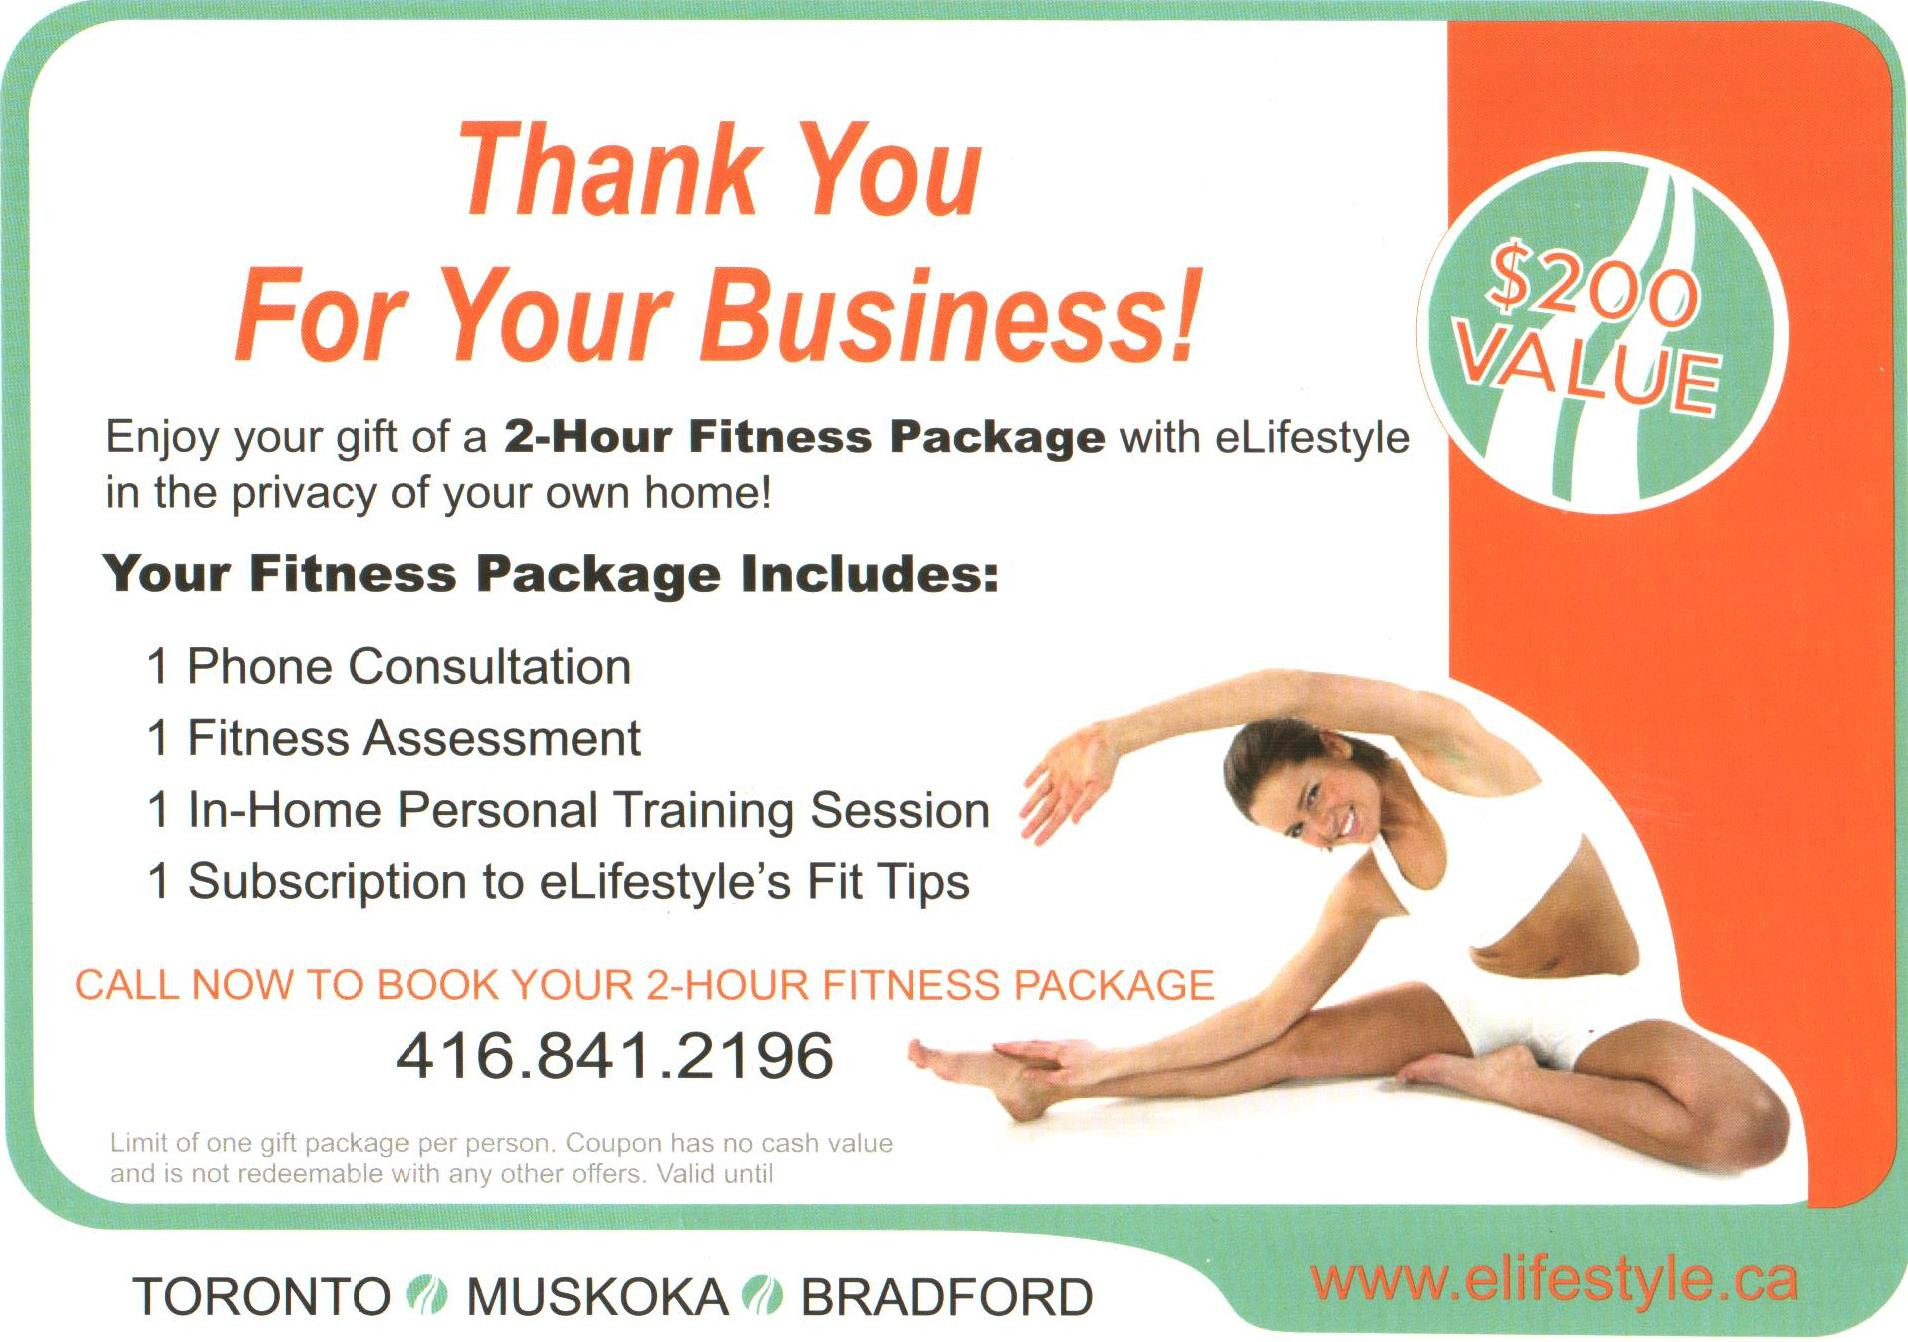 Fitness Package Promotion